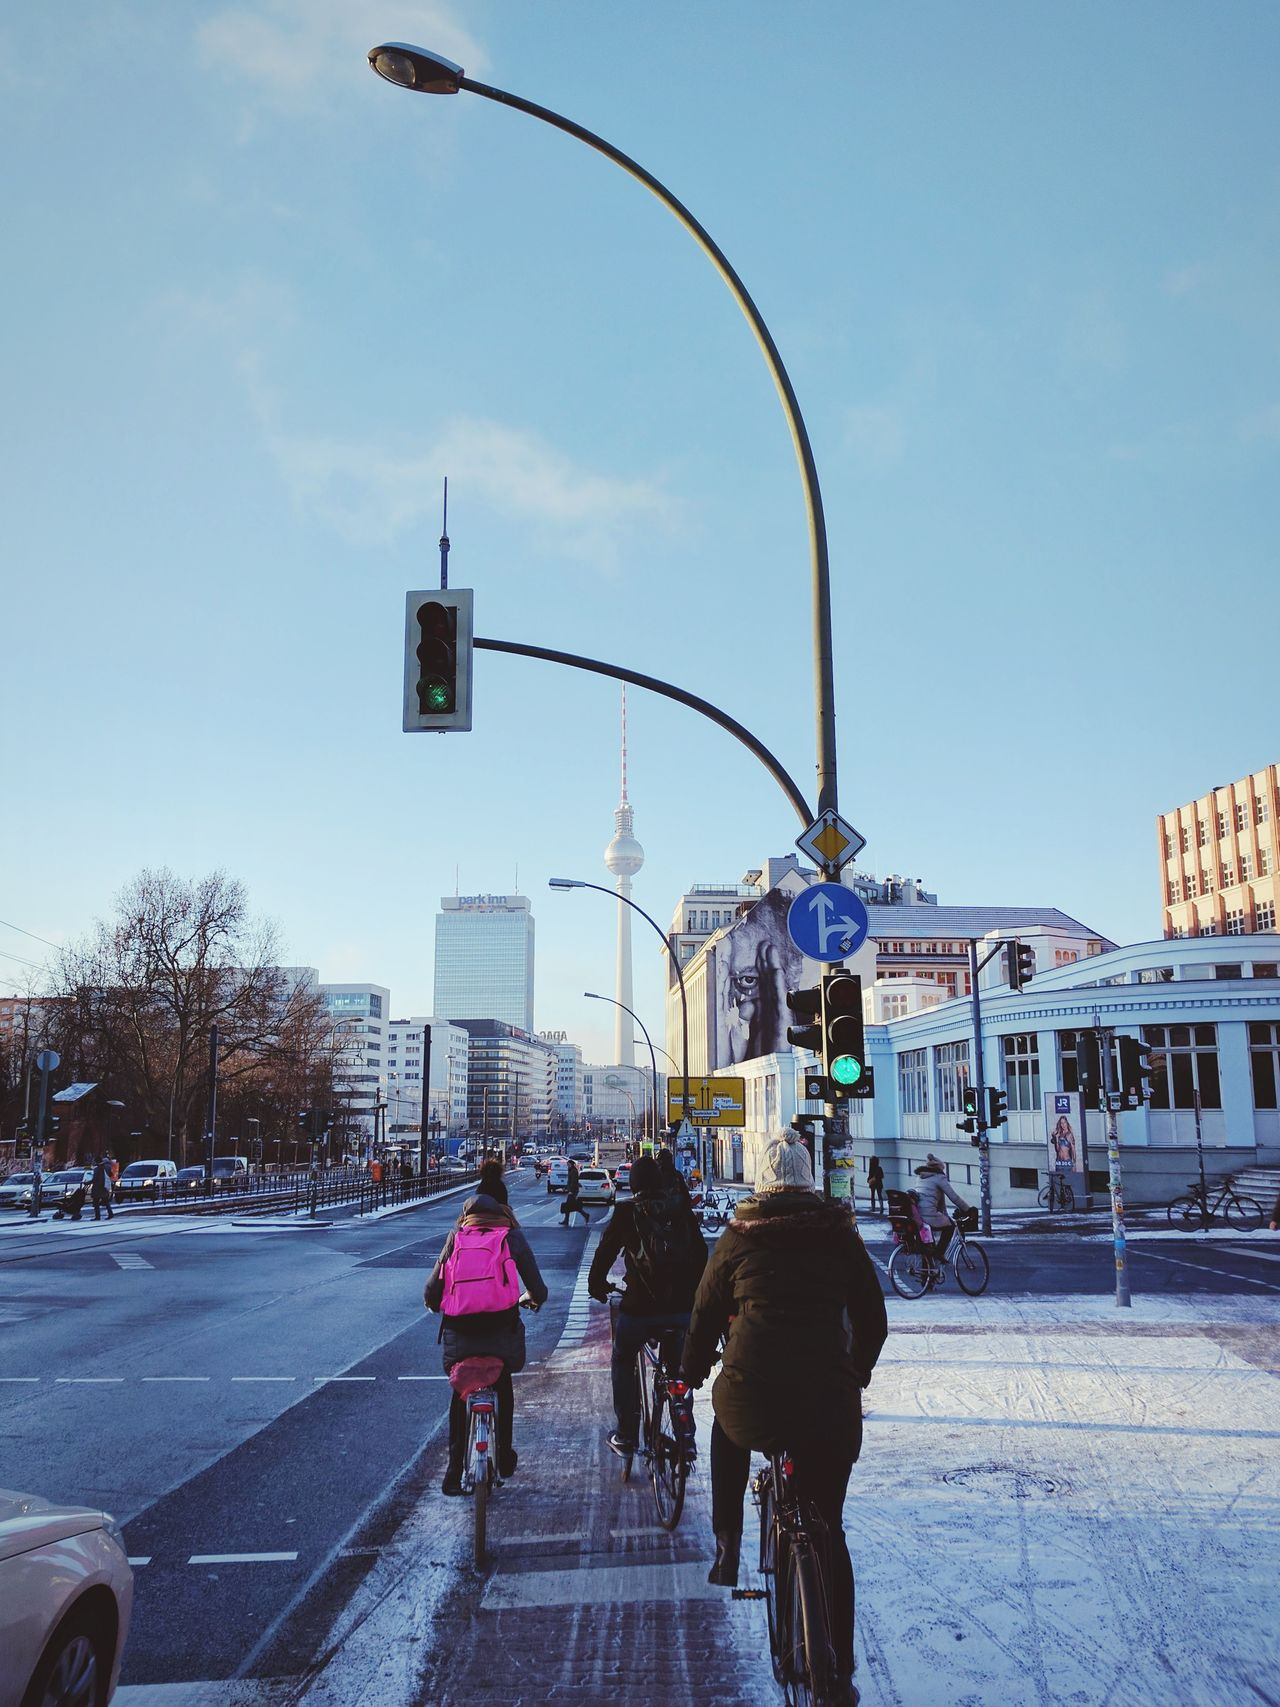 Commuting Commute Winterscapes City Ferris Wheel Outdoors Adults Only People Day Adult Urban Road One Person Cultures Sky Architecture Alexanderplatz Fernsehturm Berlin Biking Bikers Bike Ride Or Die Ride Vanishing Point Berliner Ansichten